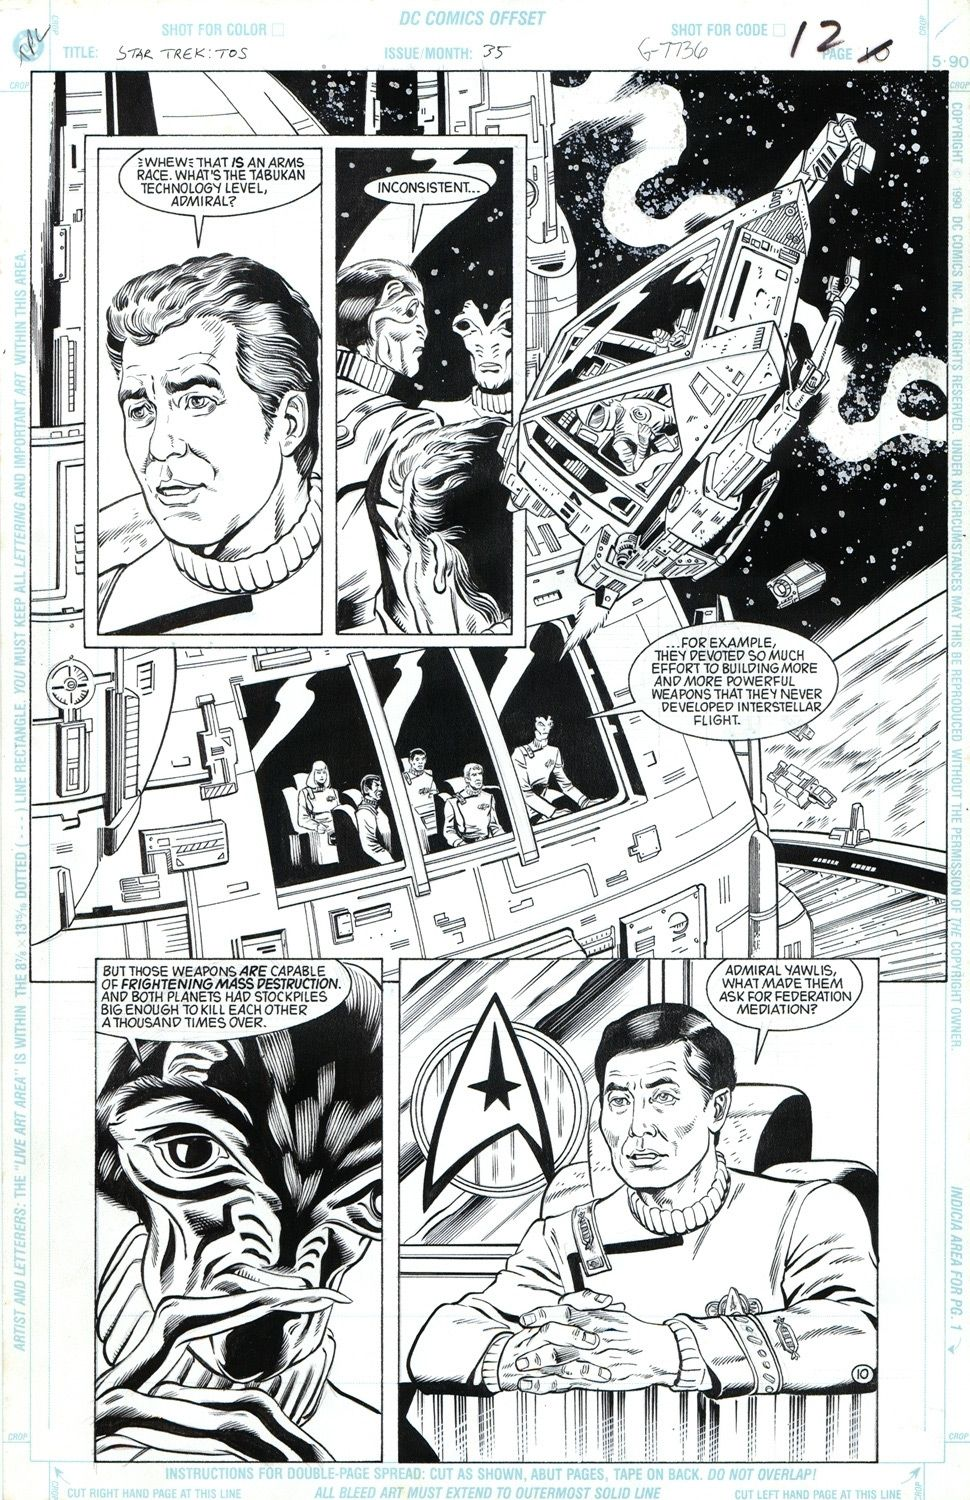 Star Trek: The Tabukan Syndrome #35 / 12